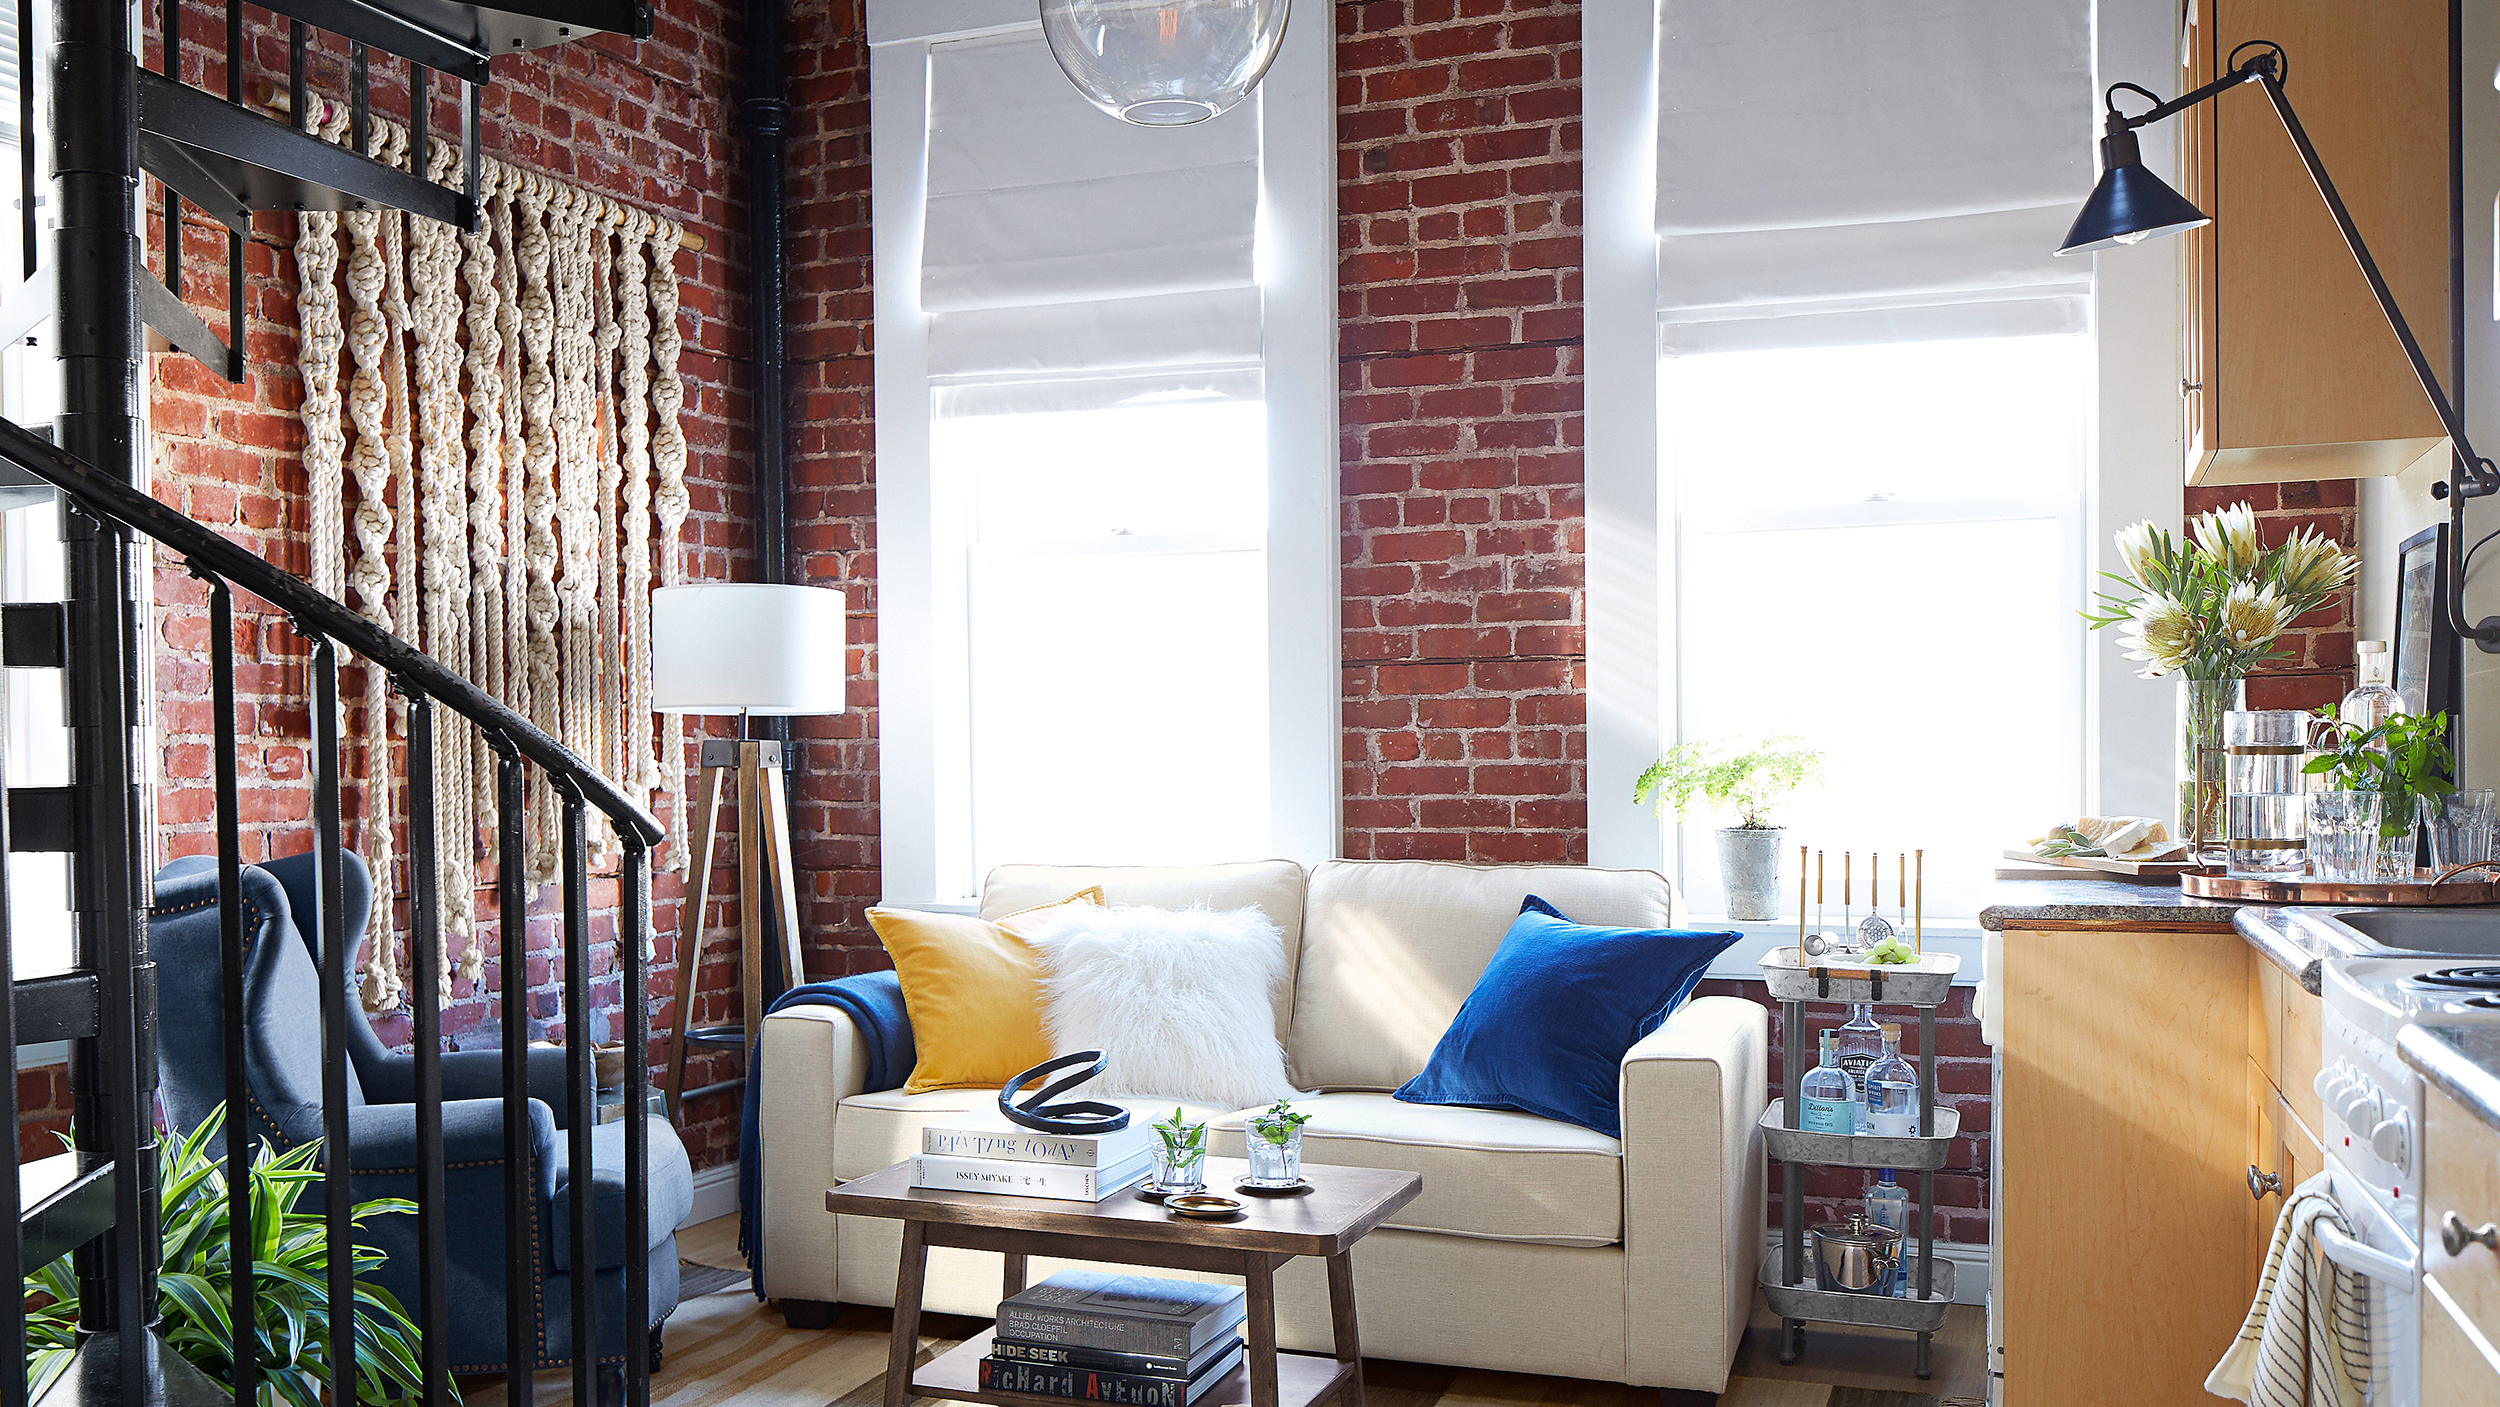 Pottery Barn apartment is designed for small spaces